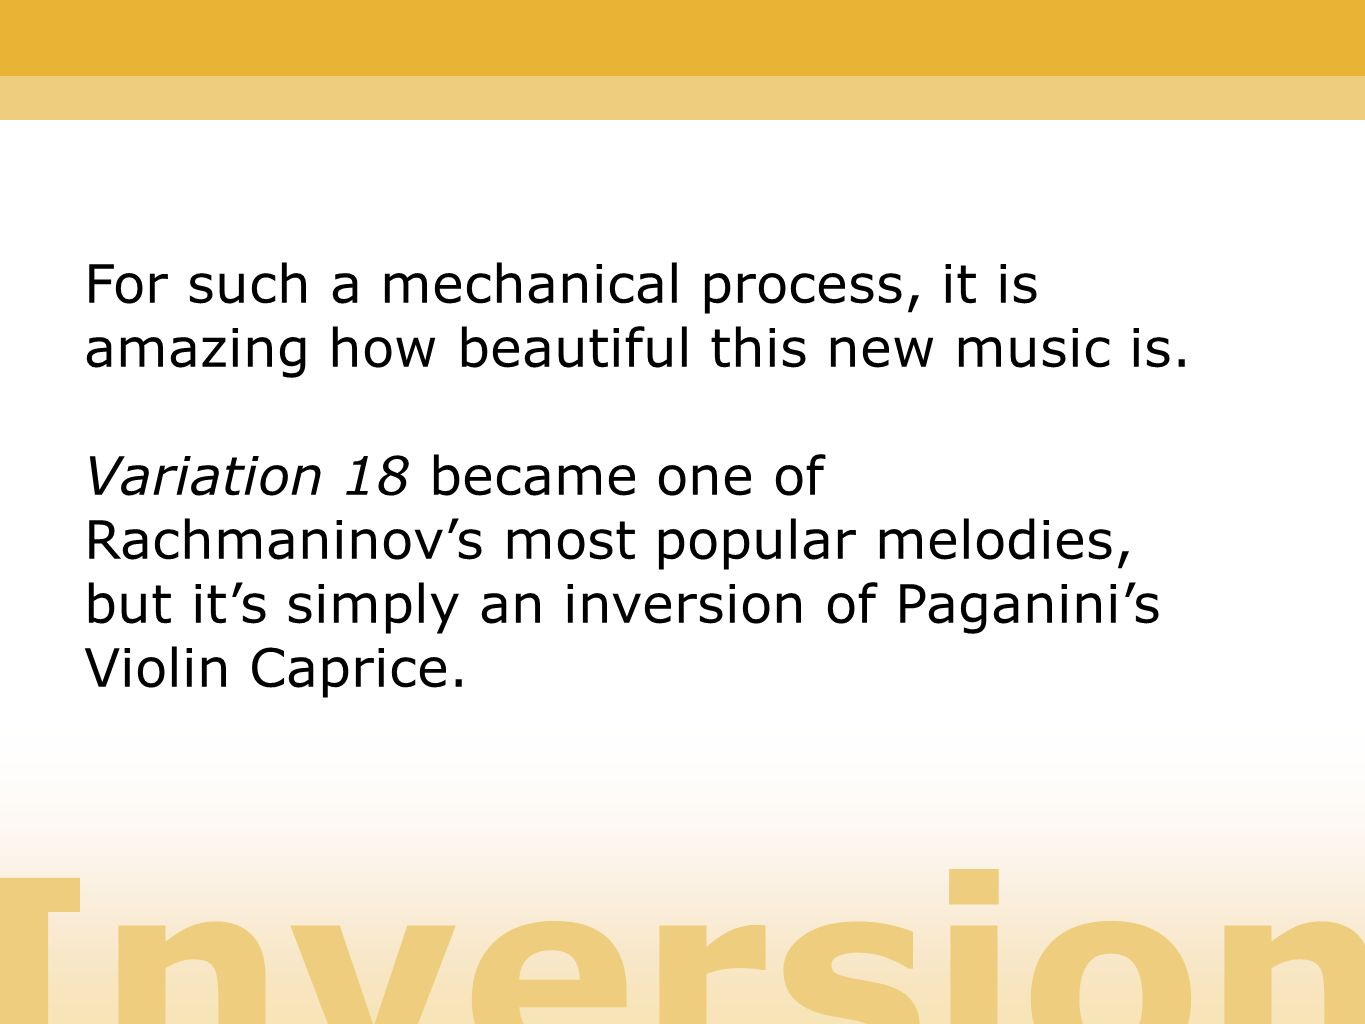 Inversion For such a mechanical process, it is amazing how beautiful this new music is.